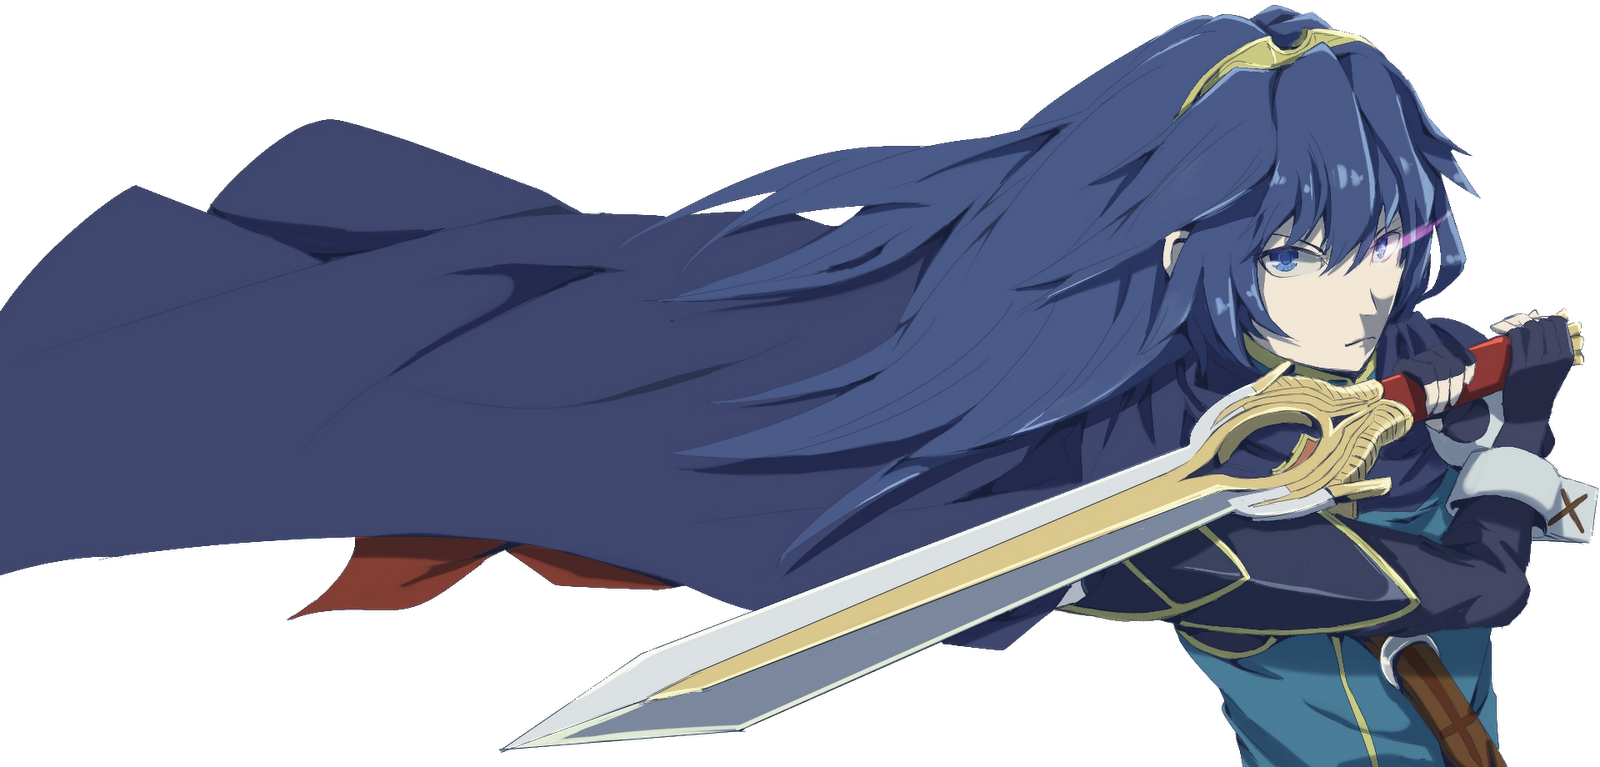 The Game-Art-HQ Project: Lucina from Fire Emblem Awakening